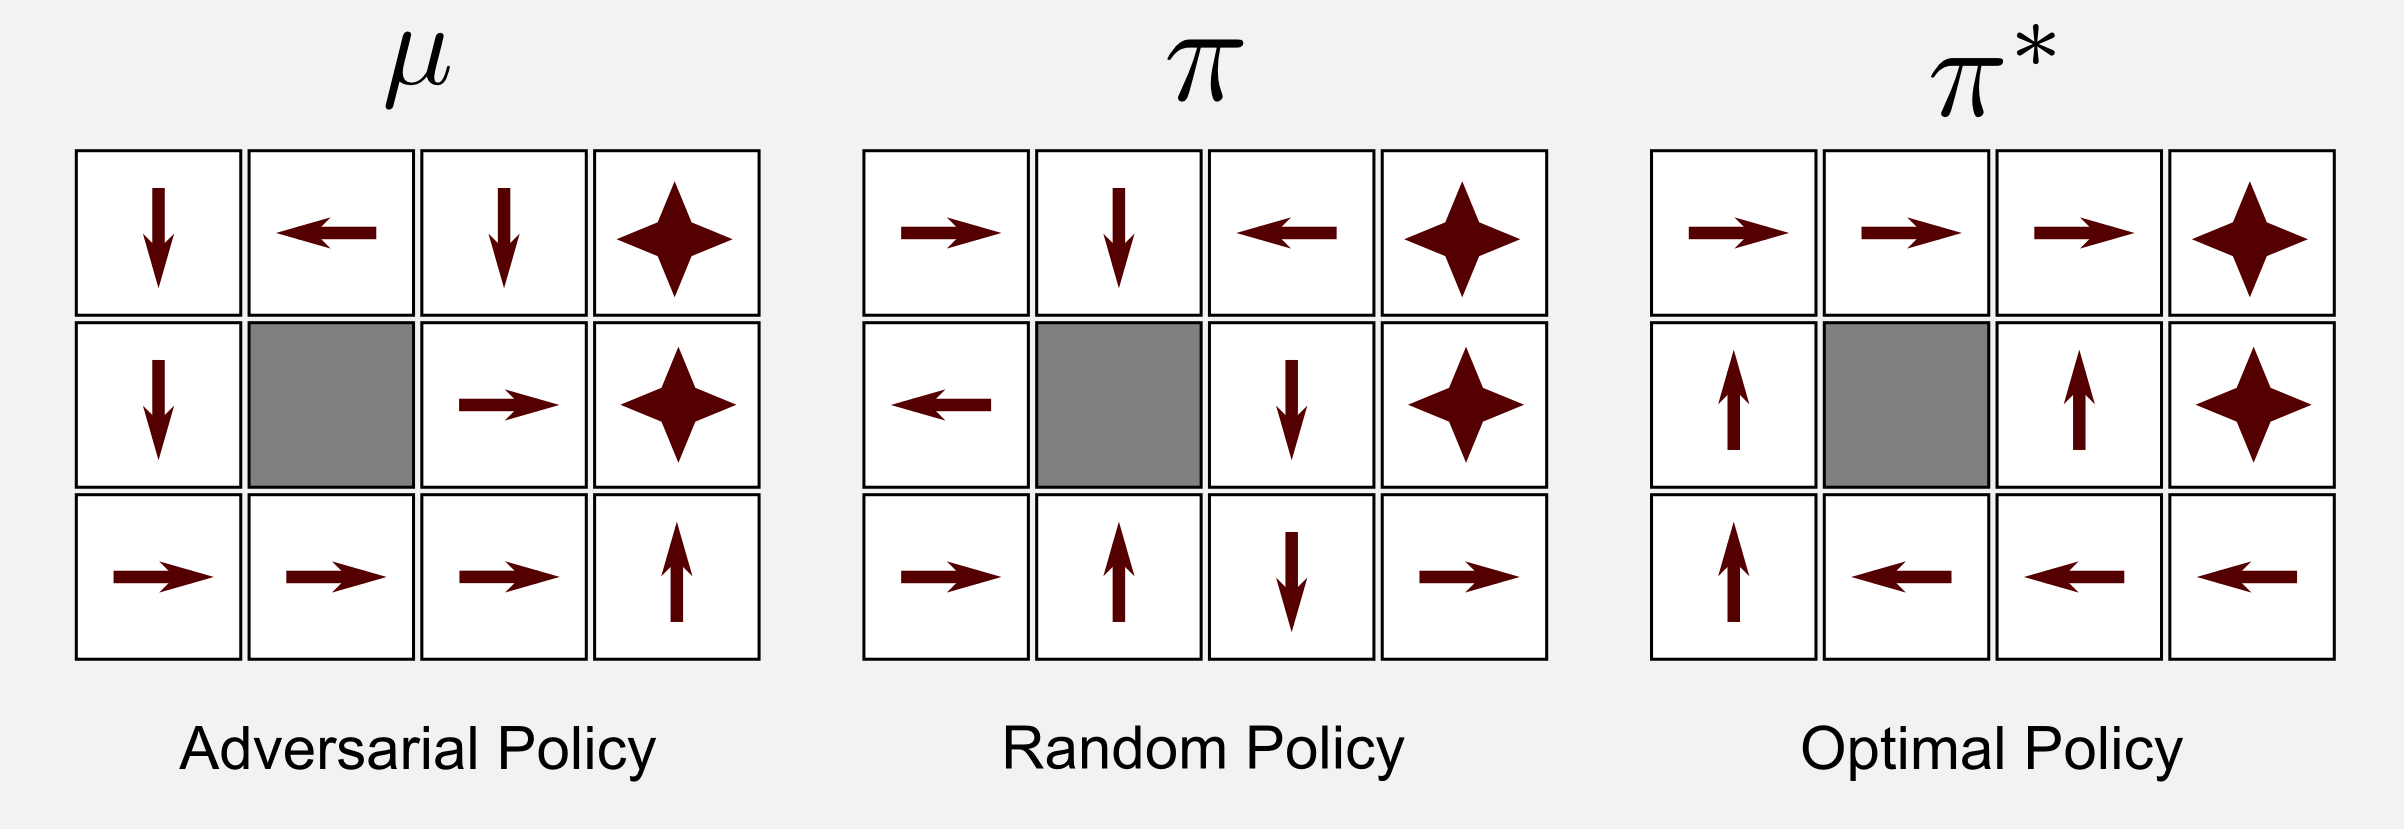 Reinforcement Learning Q-learning example three policies